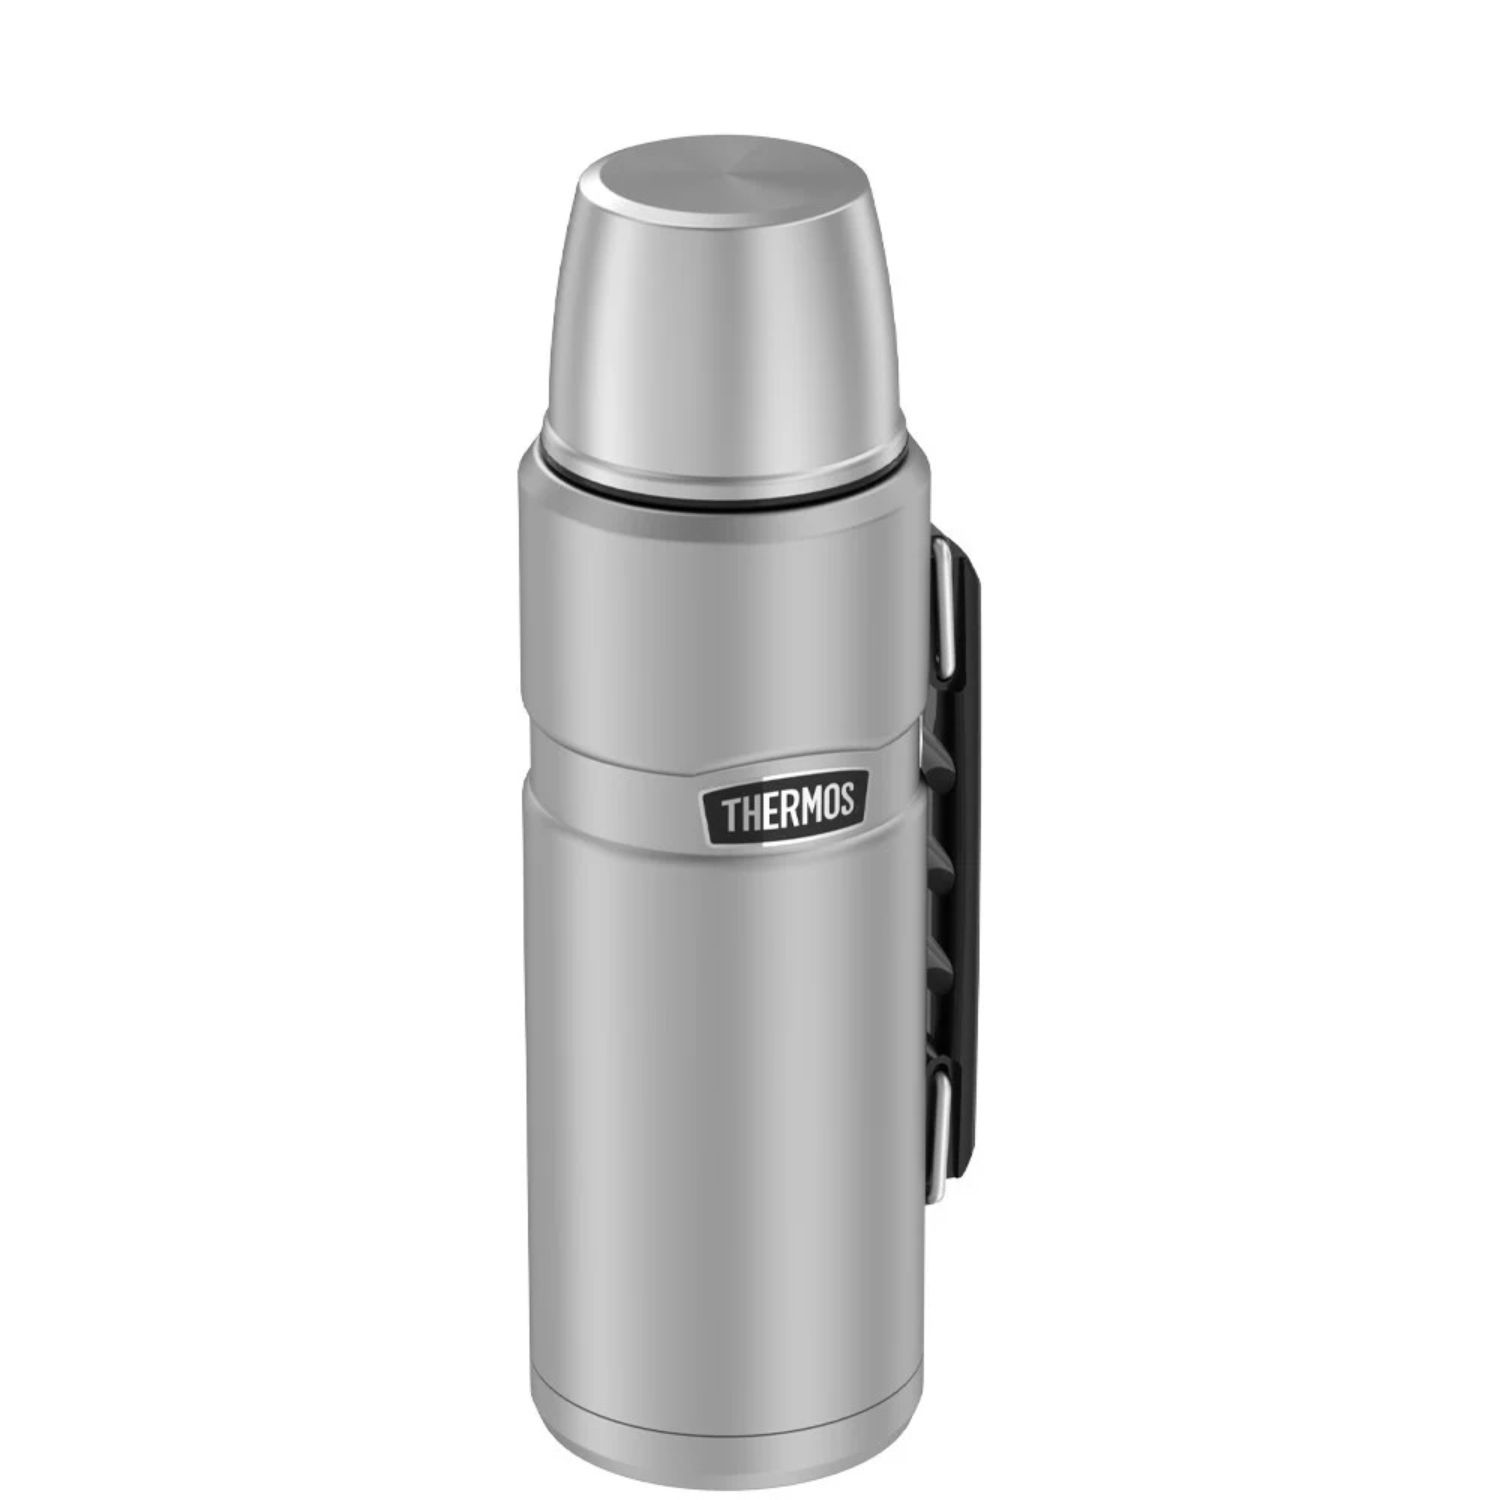 Thermos 40 oz Stainless Steel Beverage Bottle Silver